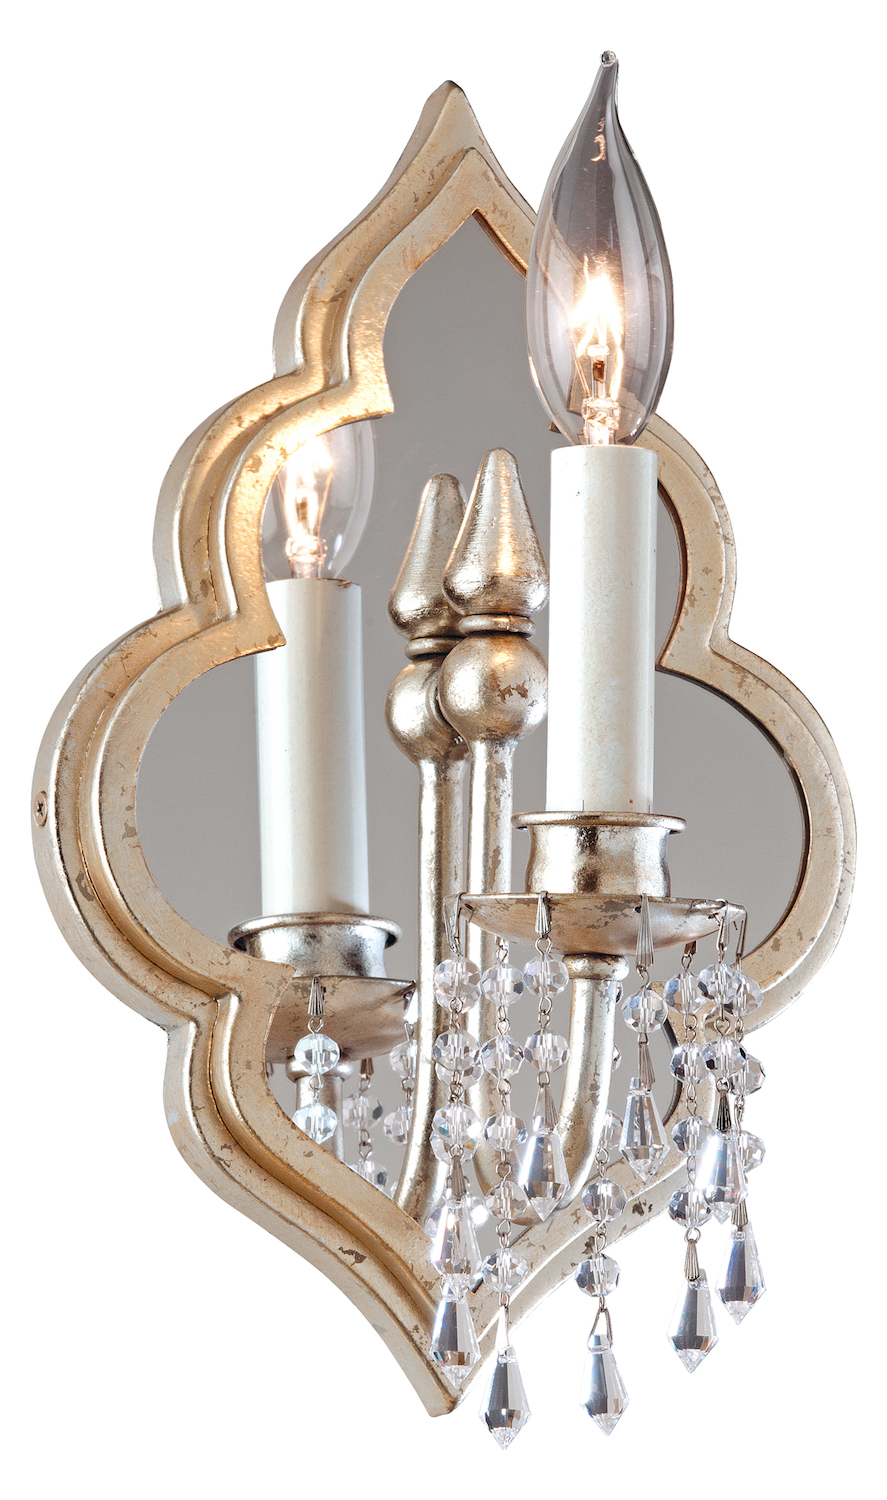 Corbett Silver Leaf Finish With Antique Mist Bijoux 1 Light Mirrored Wall Sconce Silver Leaf ...